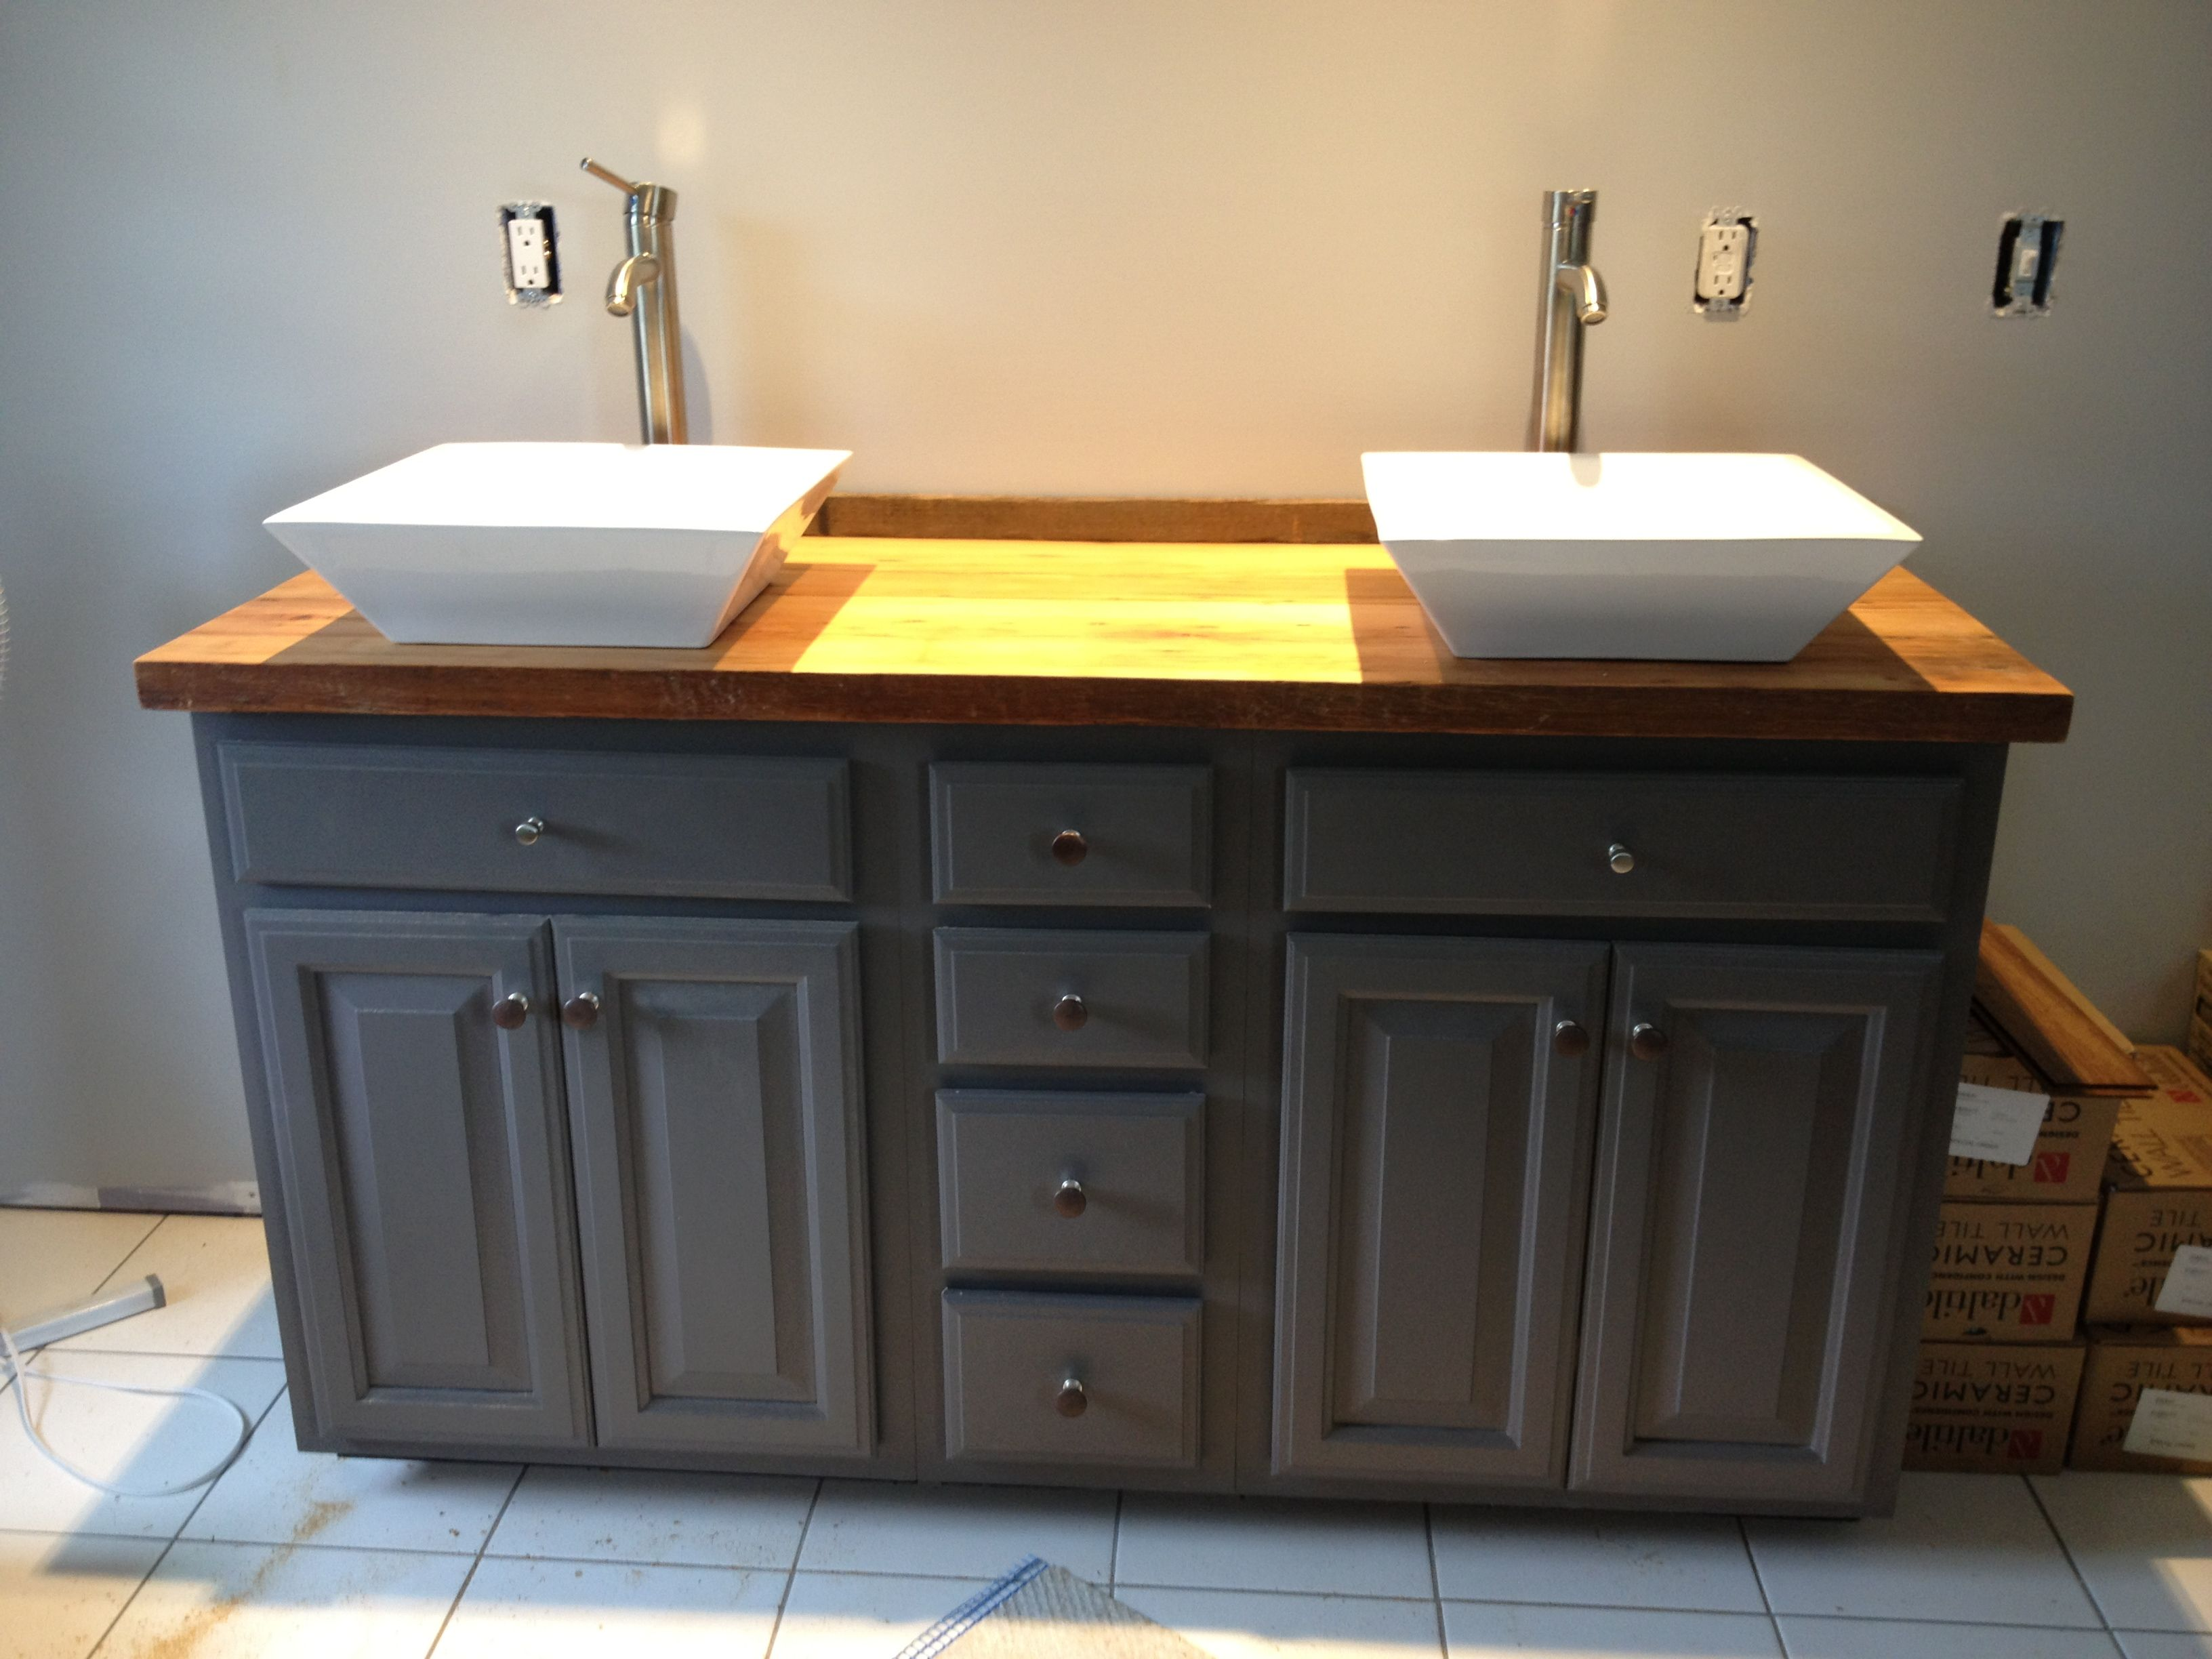 Diy Bathroom Vanity Used The Barn Wood Hemlock Pieces Finished With Tung Oil Counter Top